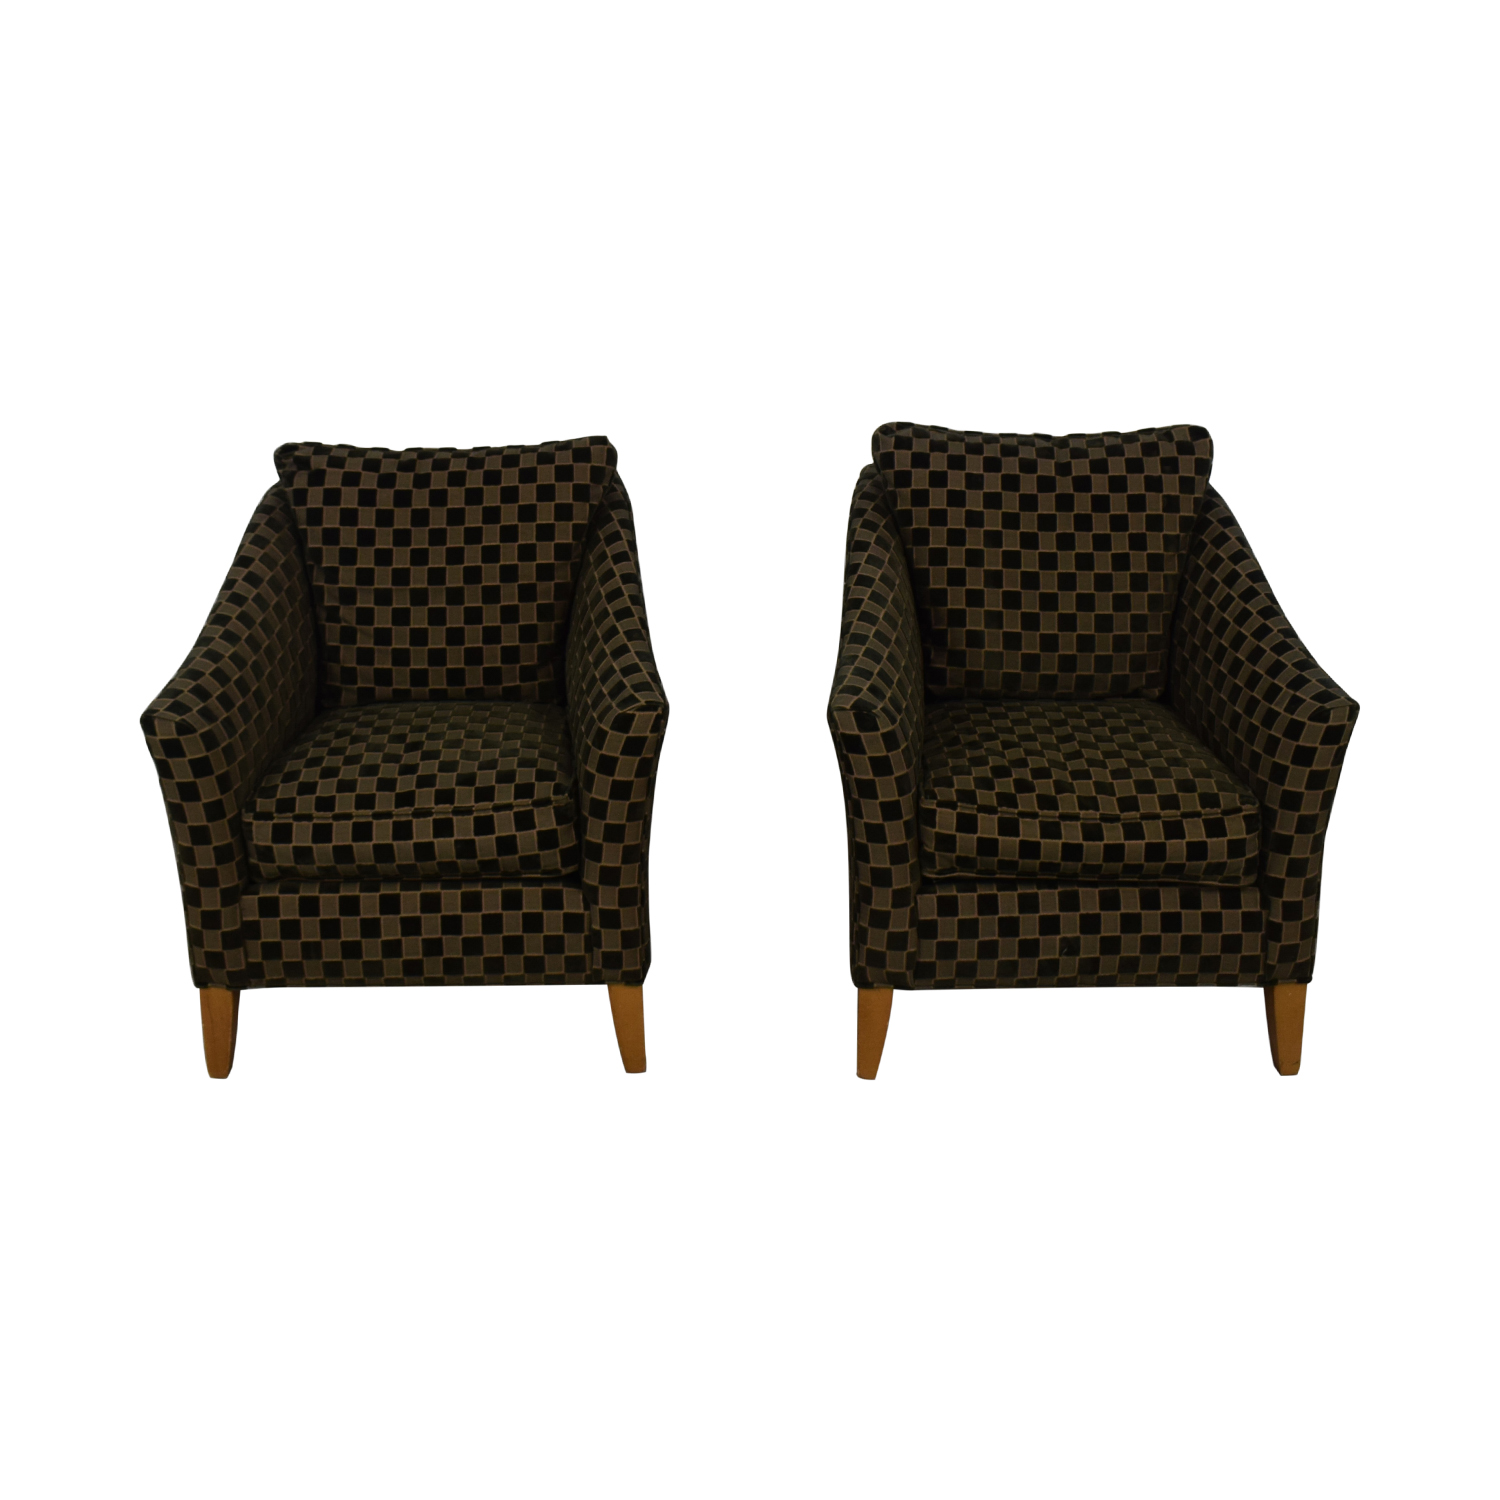 Ethan Allen Ethan Allen Checkered Accent Chairs coupon